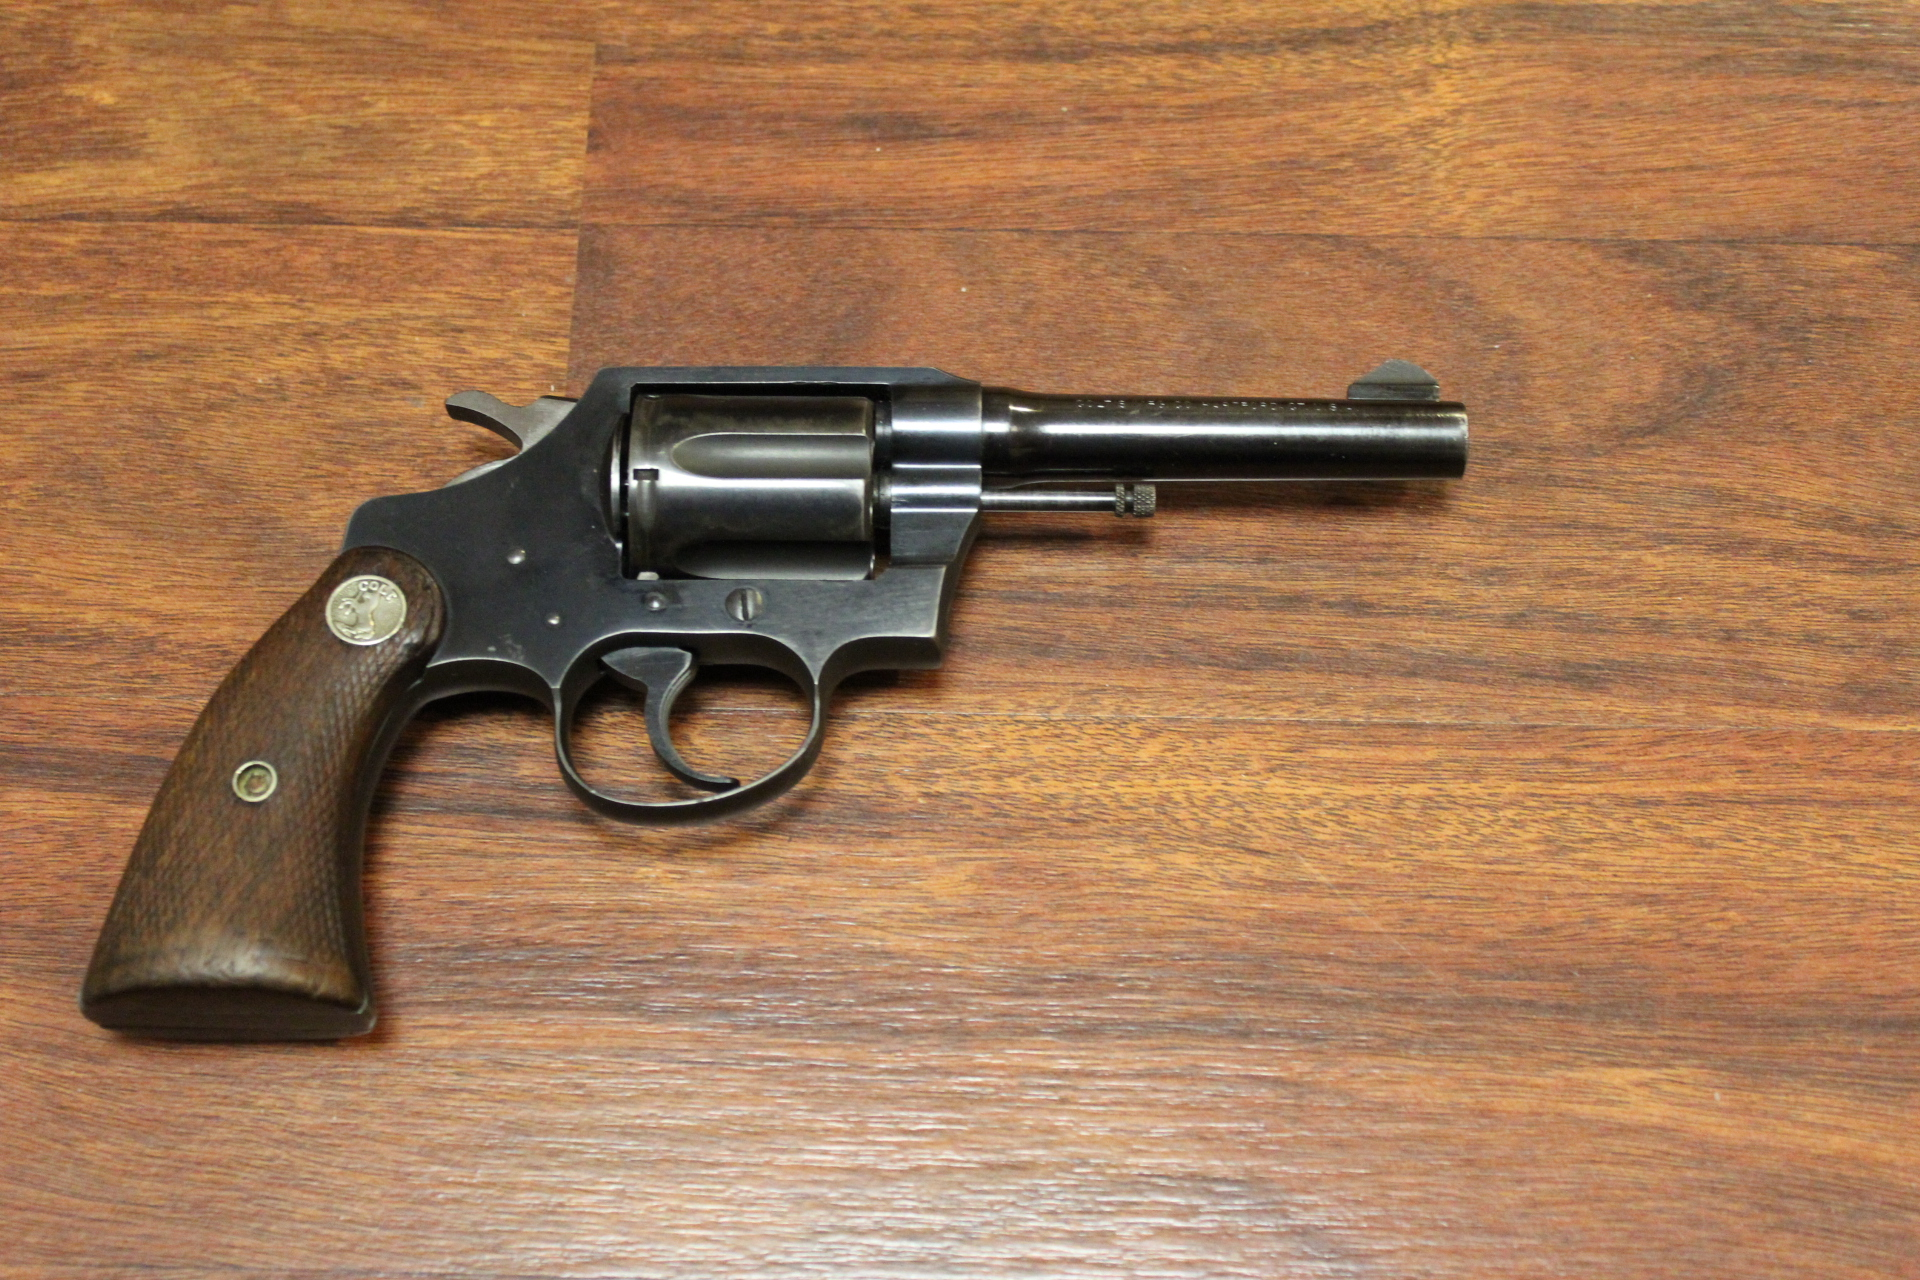 Share some Colt love - a picture thread-colt_pp_38_r.jpg